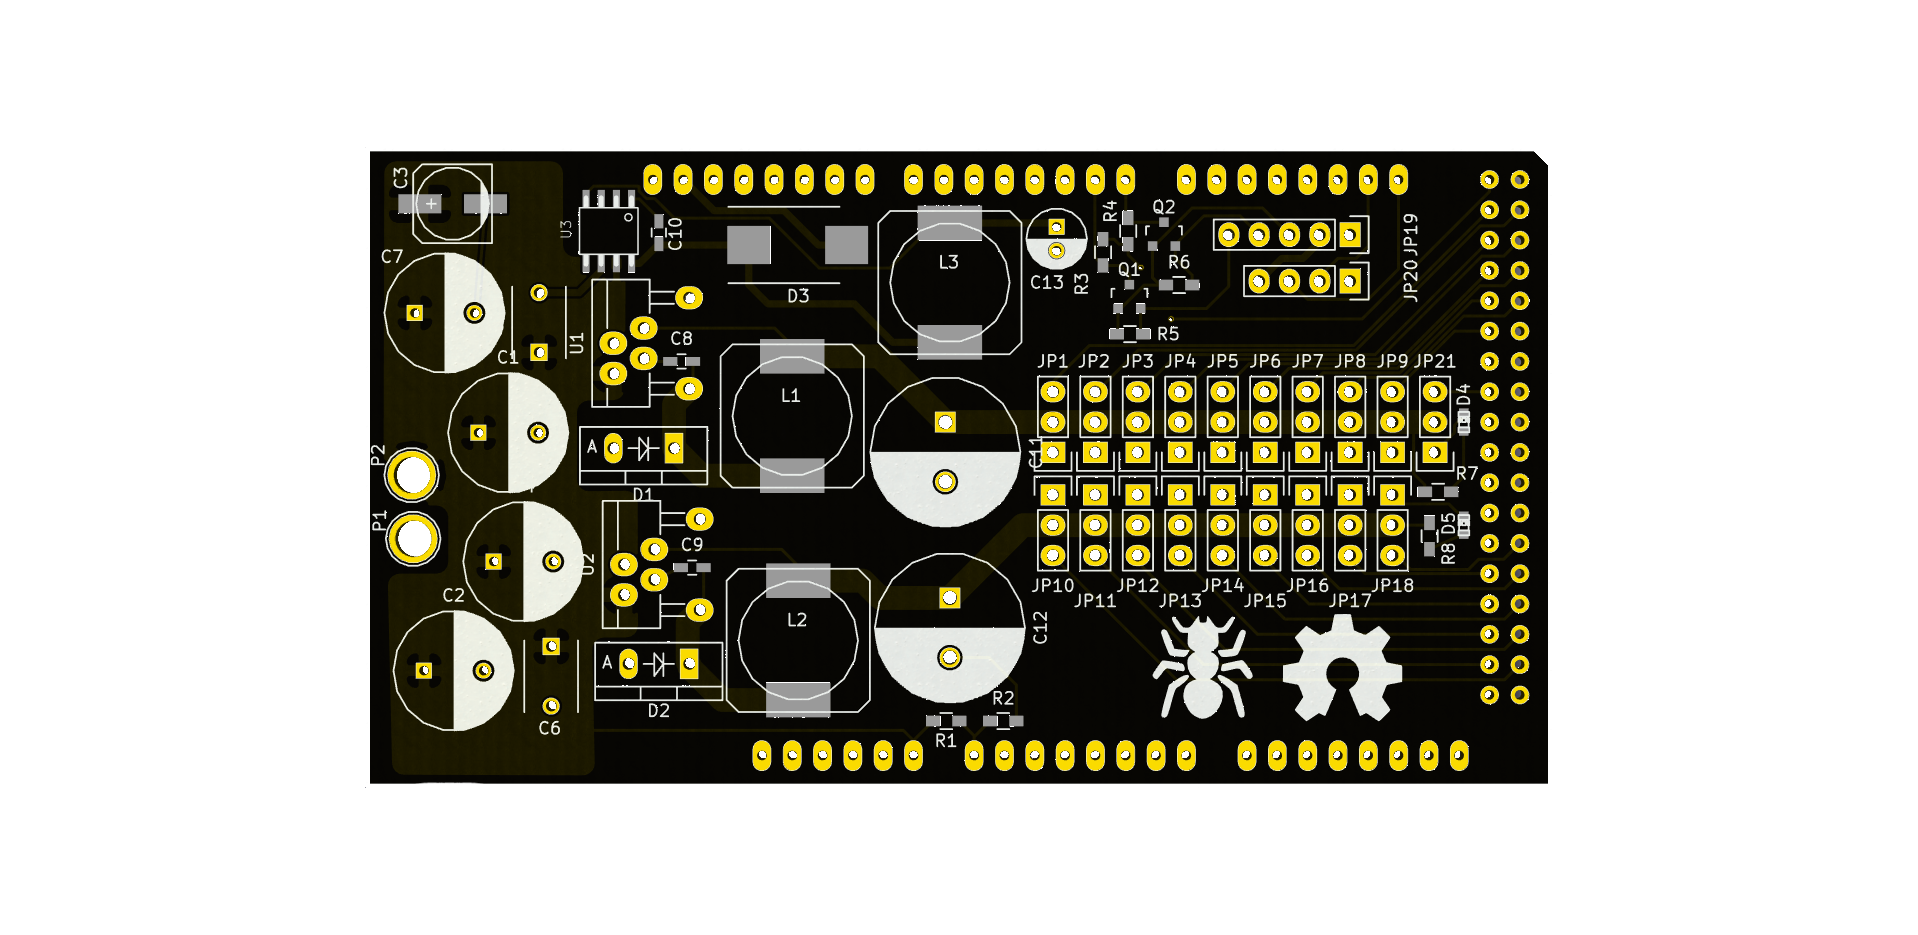 Antdroid Board